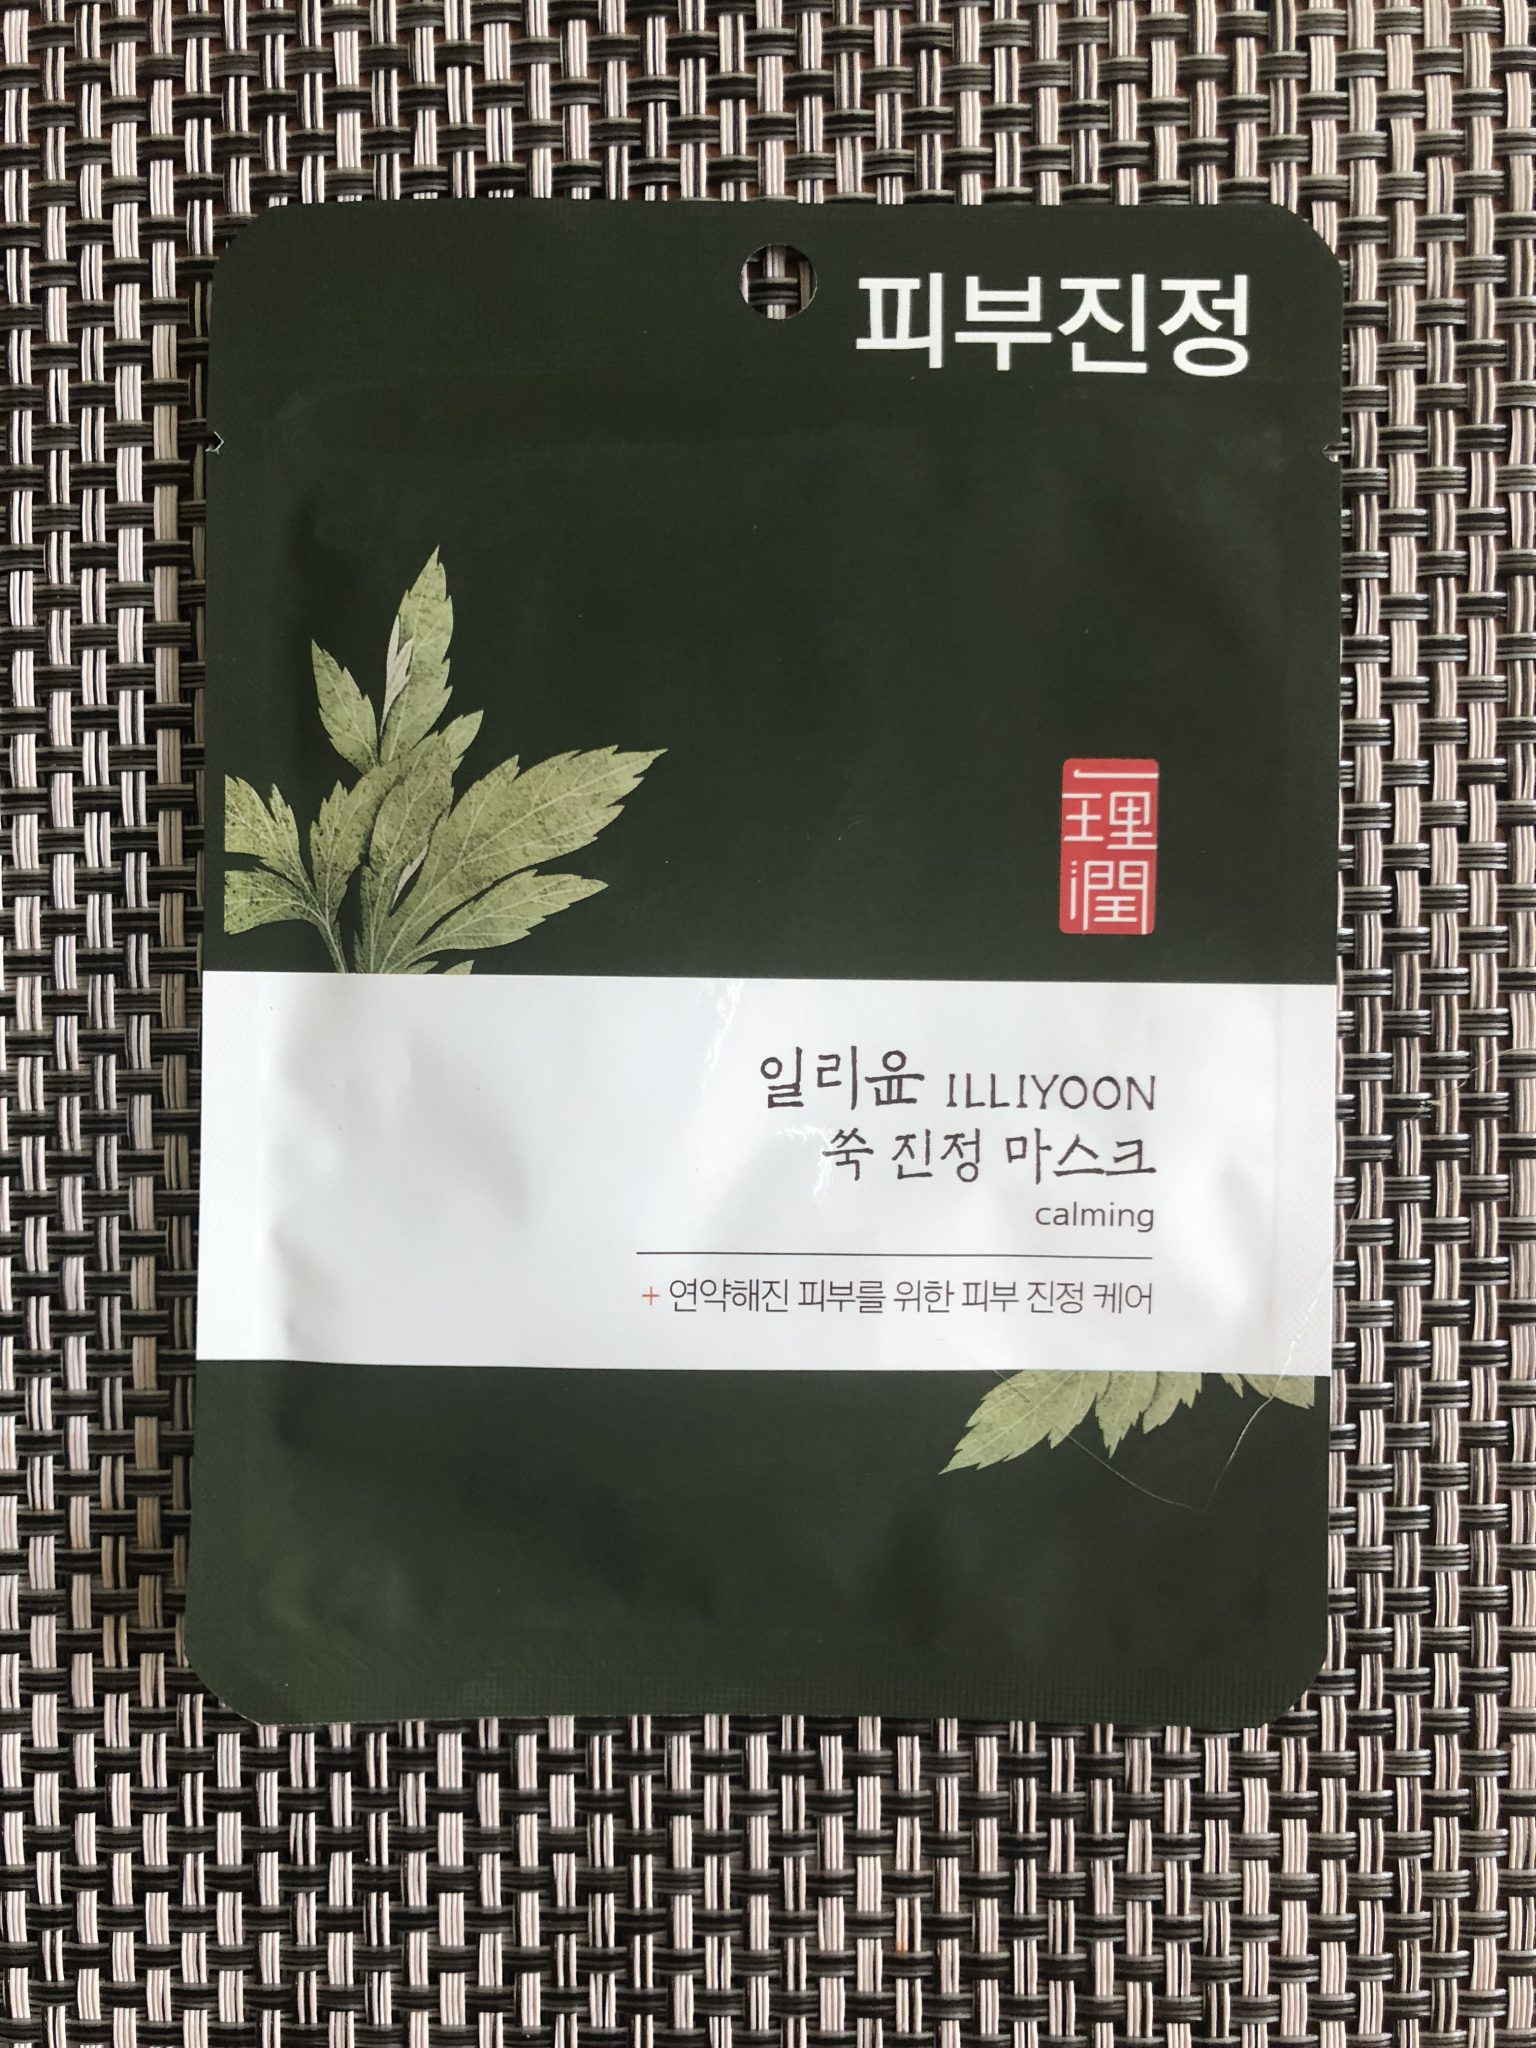 ILLIYOON Mugwort Calming Mask - My personal thoughts on face